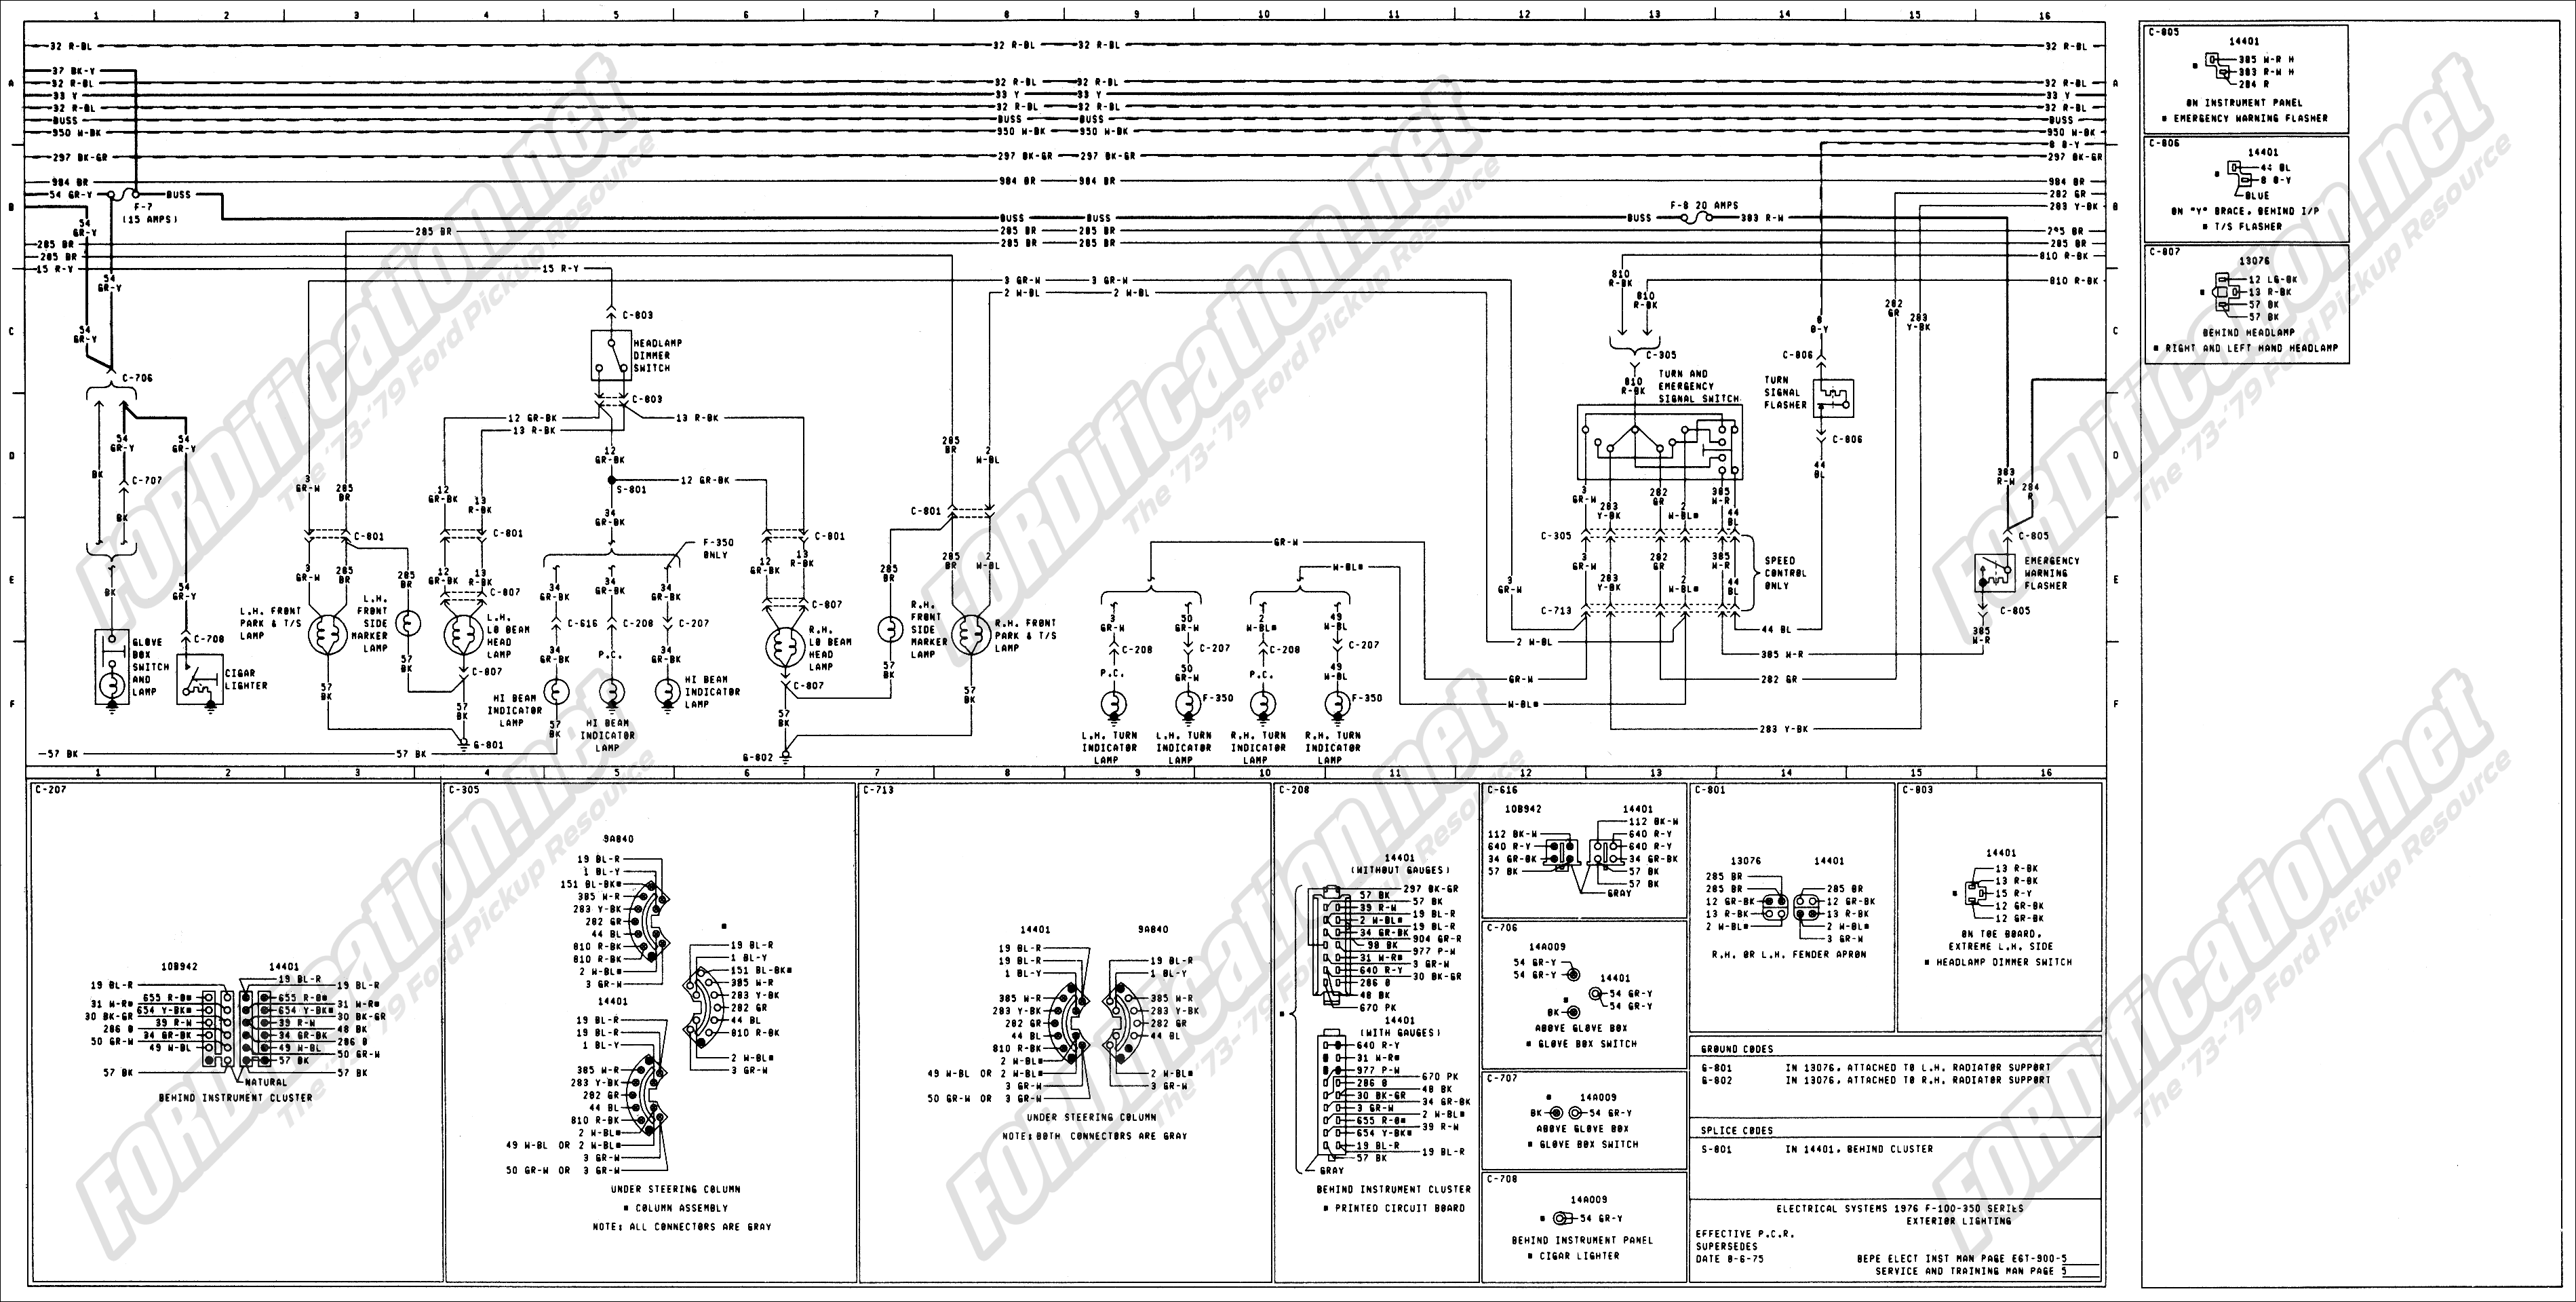 2005 ford e250 dual battery wiring diagram circuit diagram symbols u2022 rh  blogospheree com 1992 Ford Explorer Radio Wiring Diagram 2006 Ford Explorer  ...